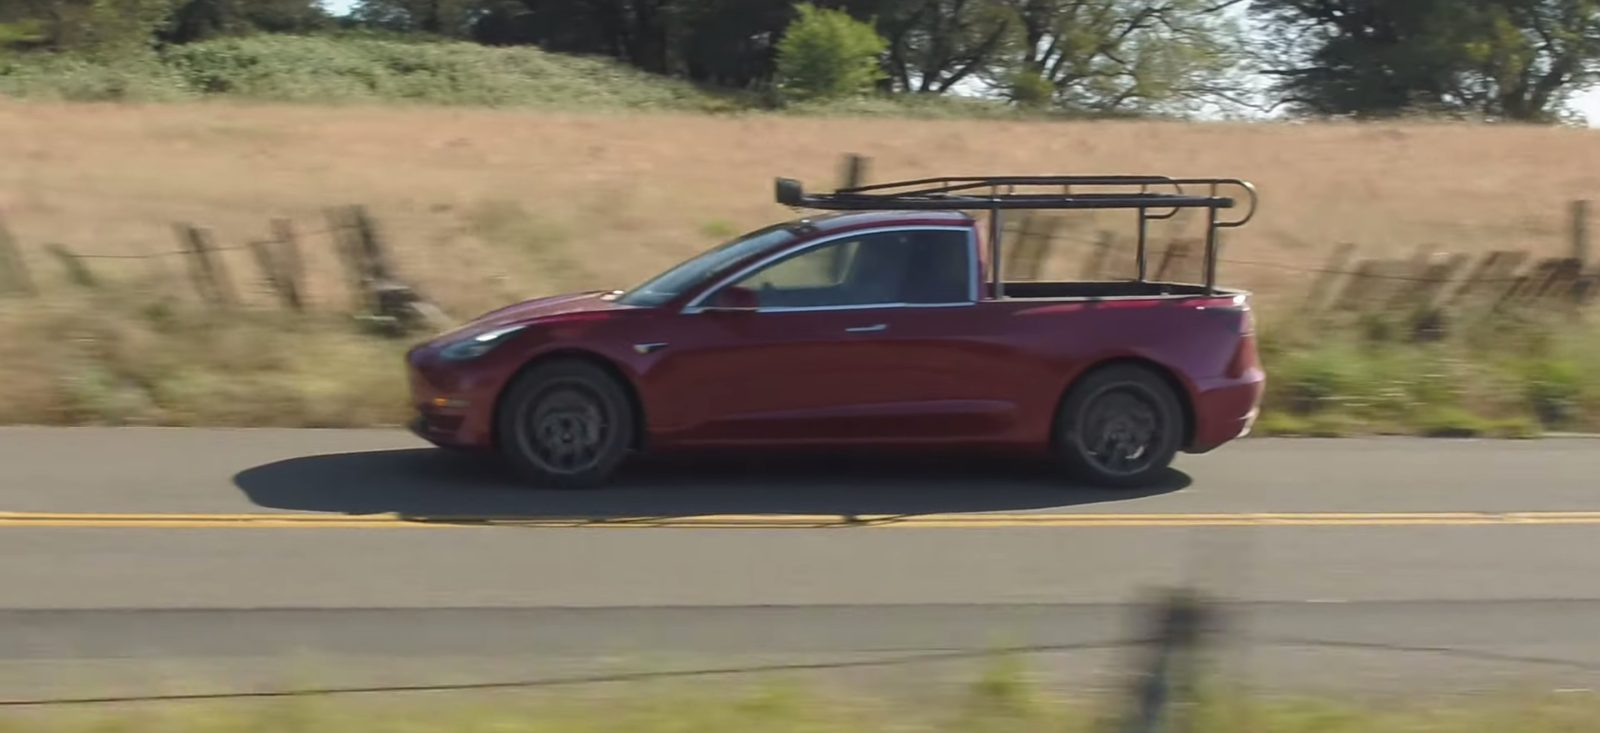 The first Tesla Pickup truck is here – sort of